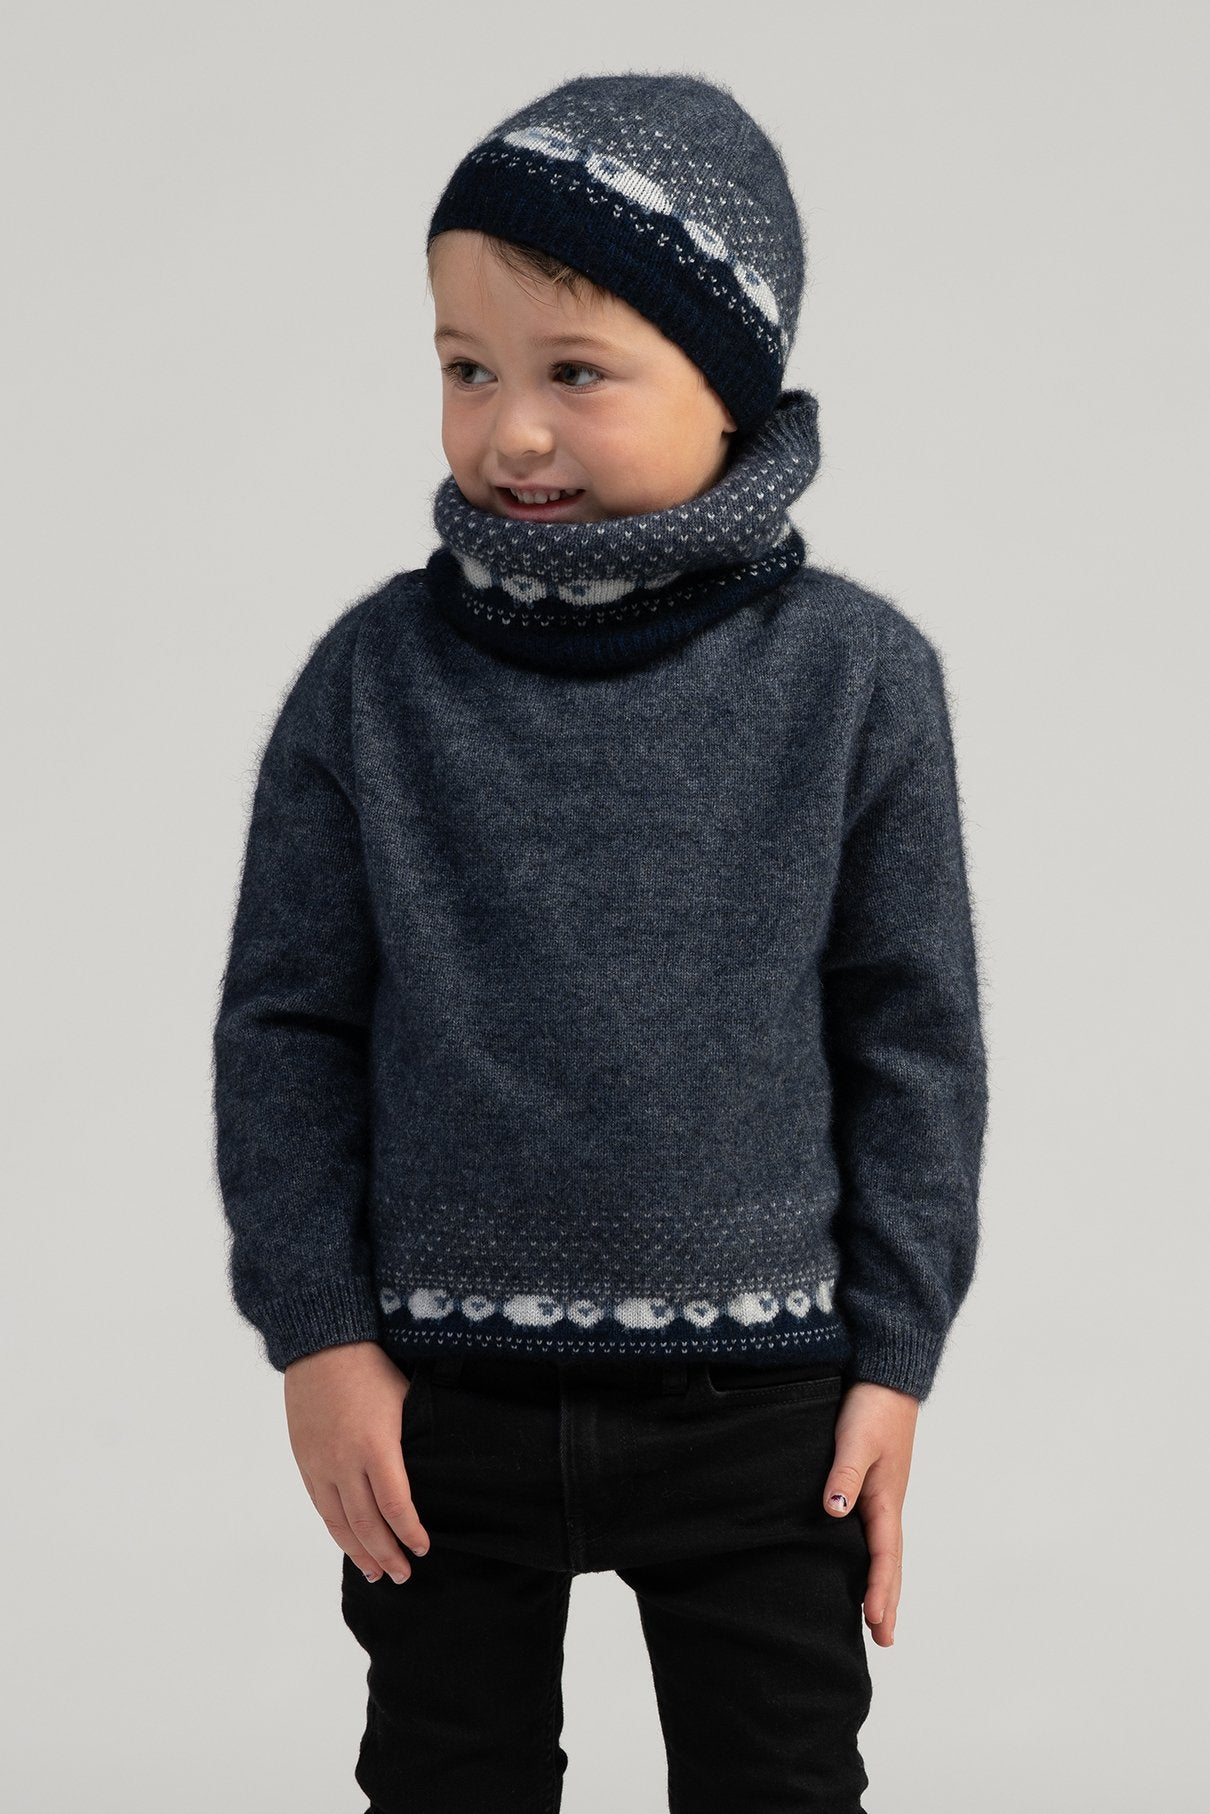 KID'S SHEEP SWEATER - Woolshed Gallery